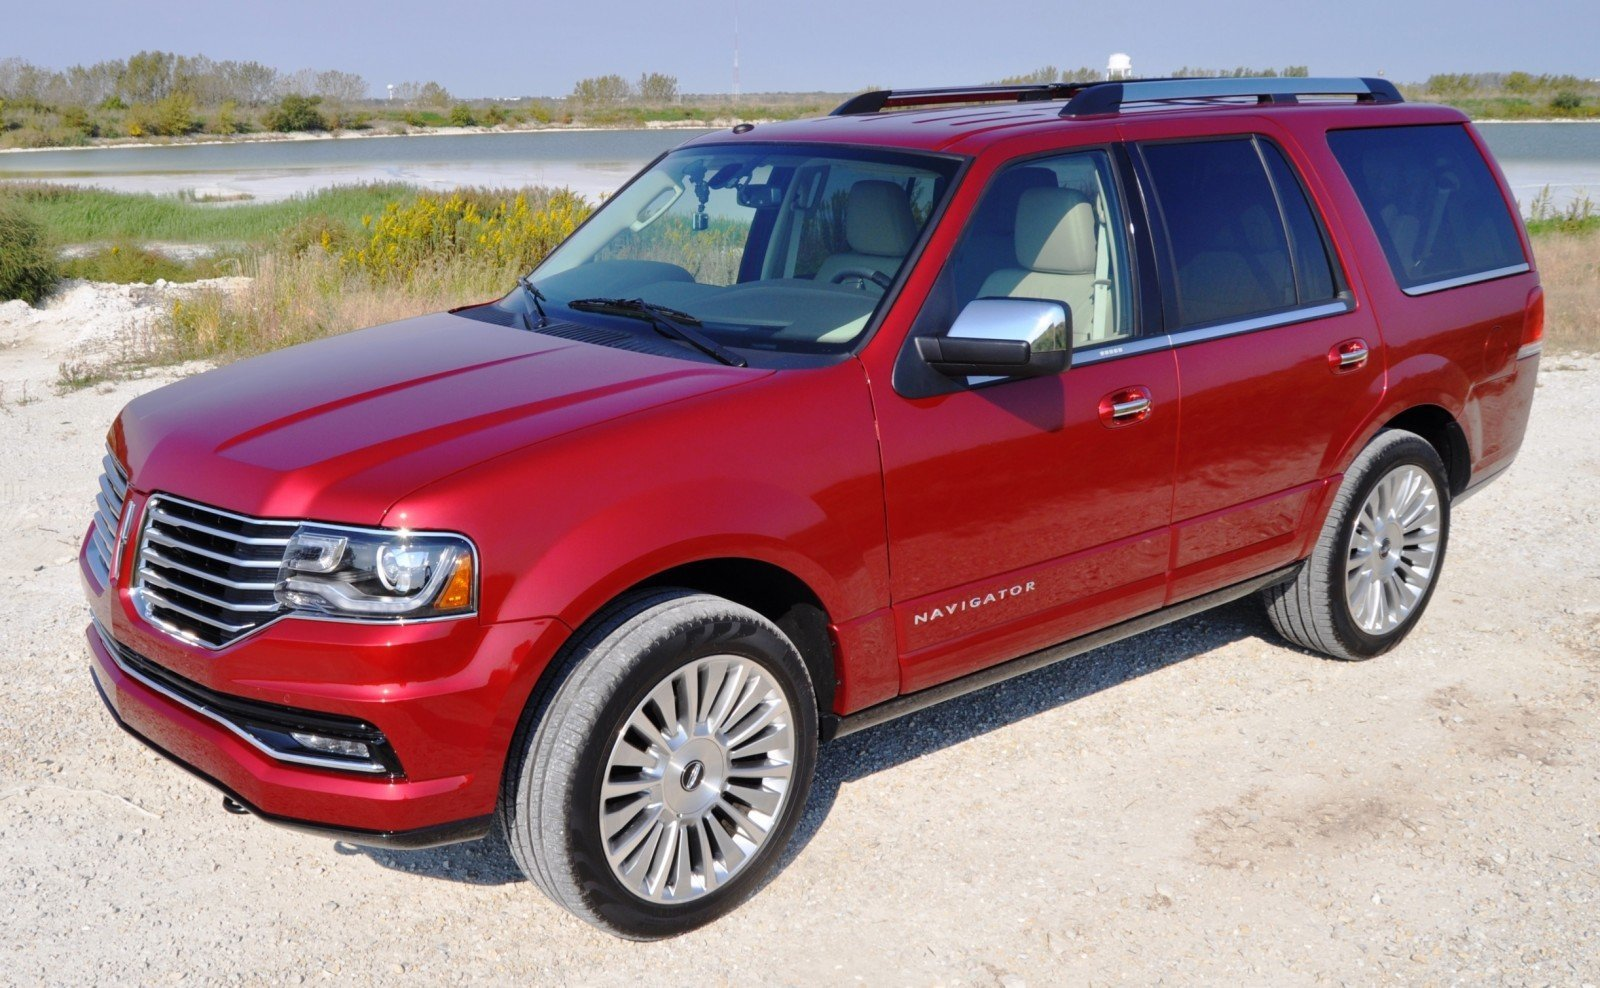 Road Test Review - 2015 Lincoln Navigator Is Totally Transformed By MR Shocks and EcoBoost 18